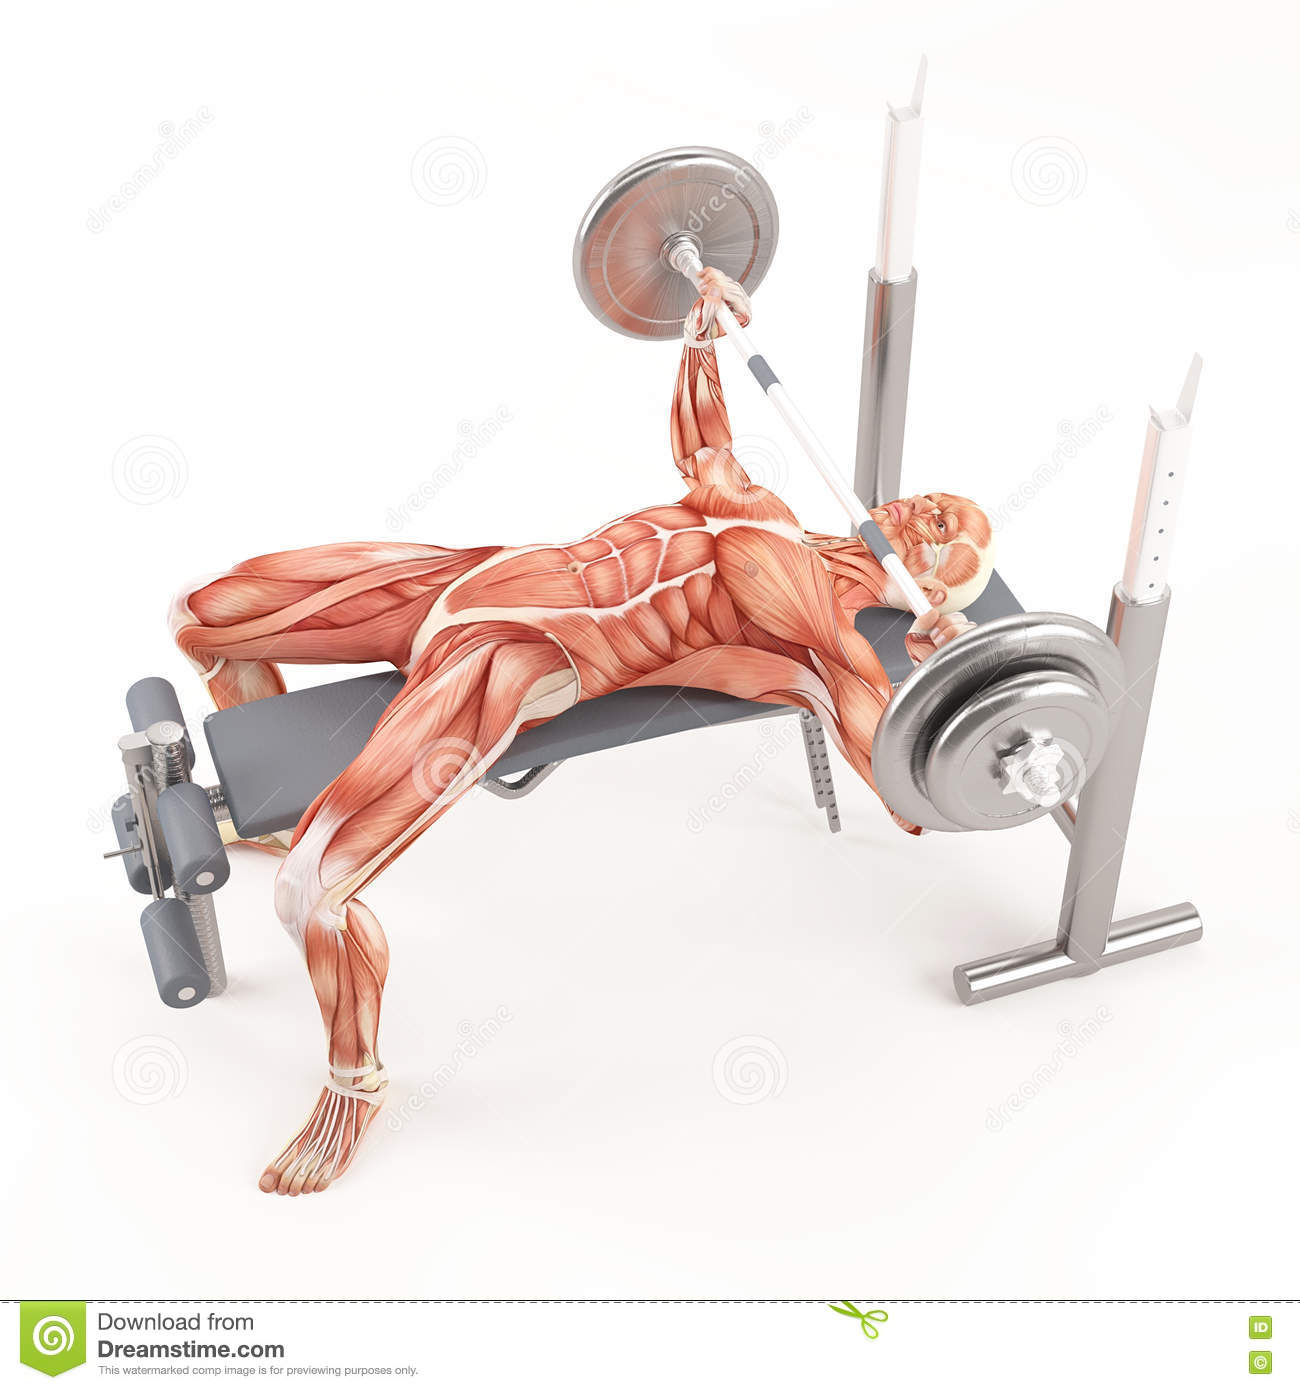 Muscles Used For Bench Press 28 Images Discover The Ultimate 5 Workout That Will Get You